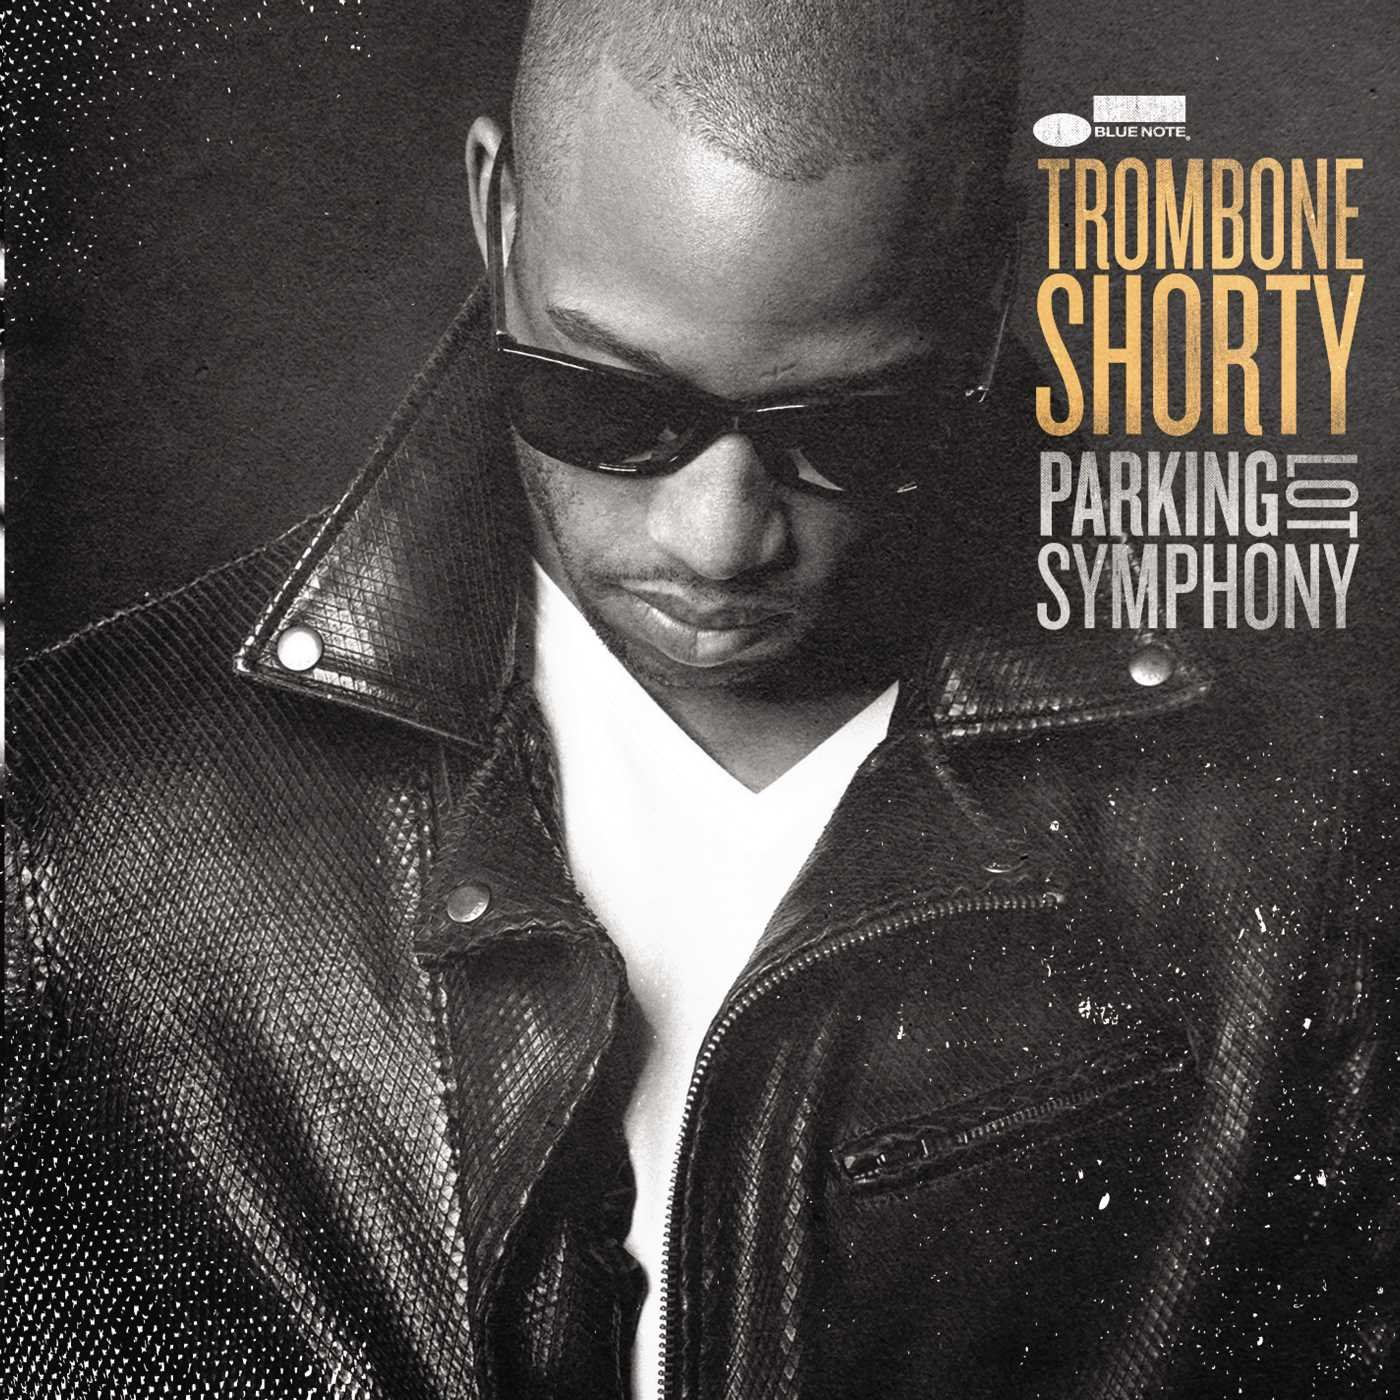 Trombone Shorty, Parking Lot Symphony